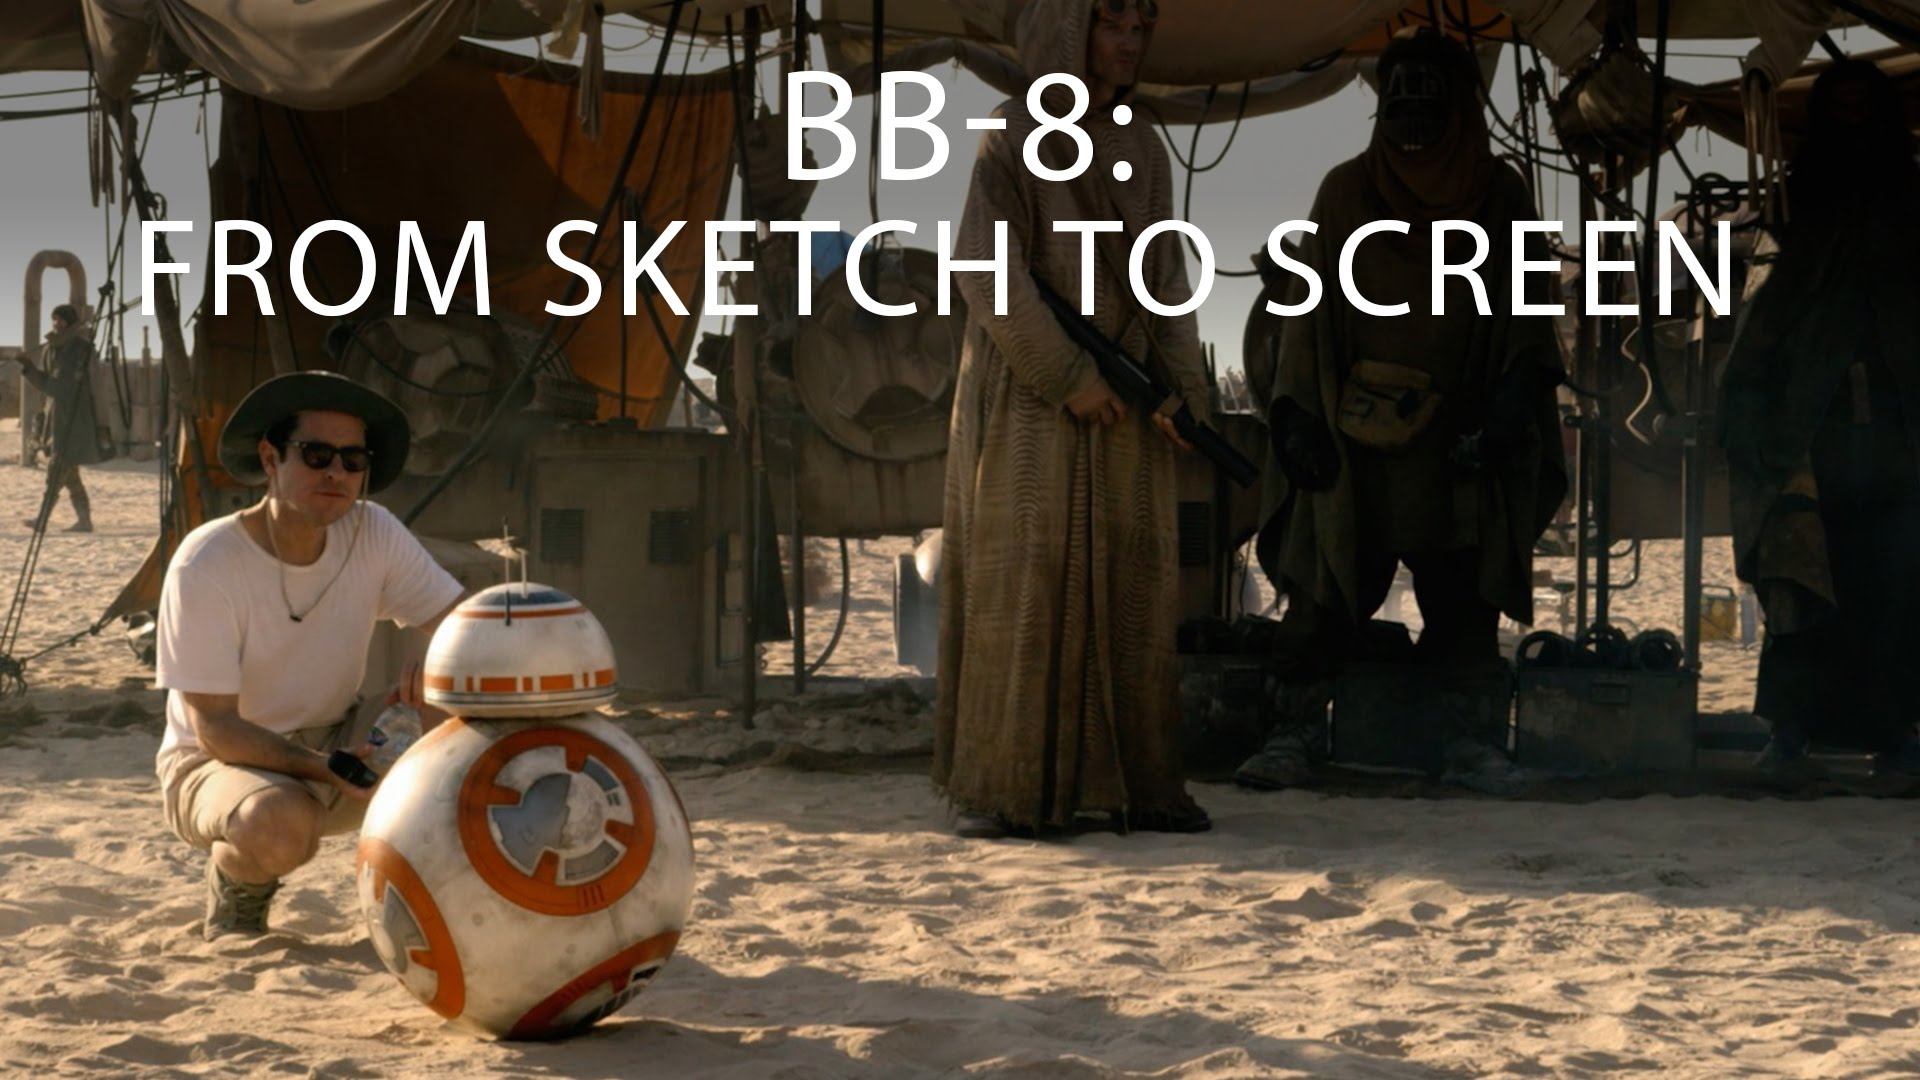 BB-8: From Sketch to Screen – Star Wars: The Force Awakens Featurette